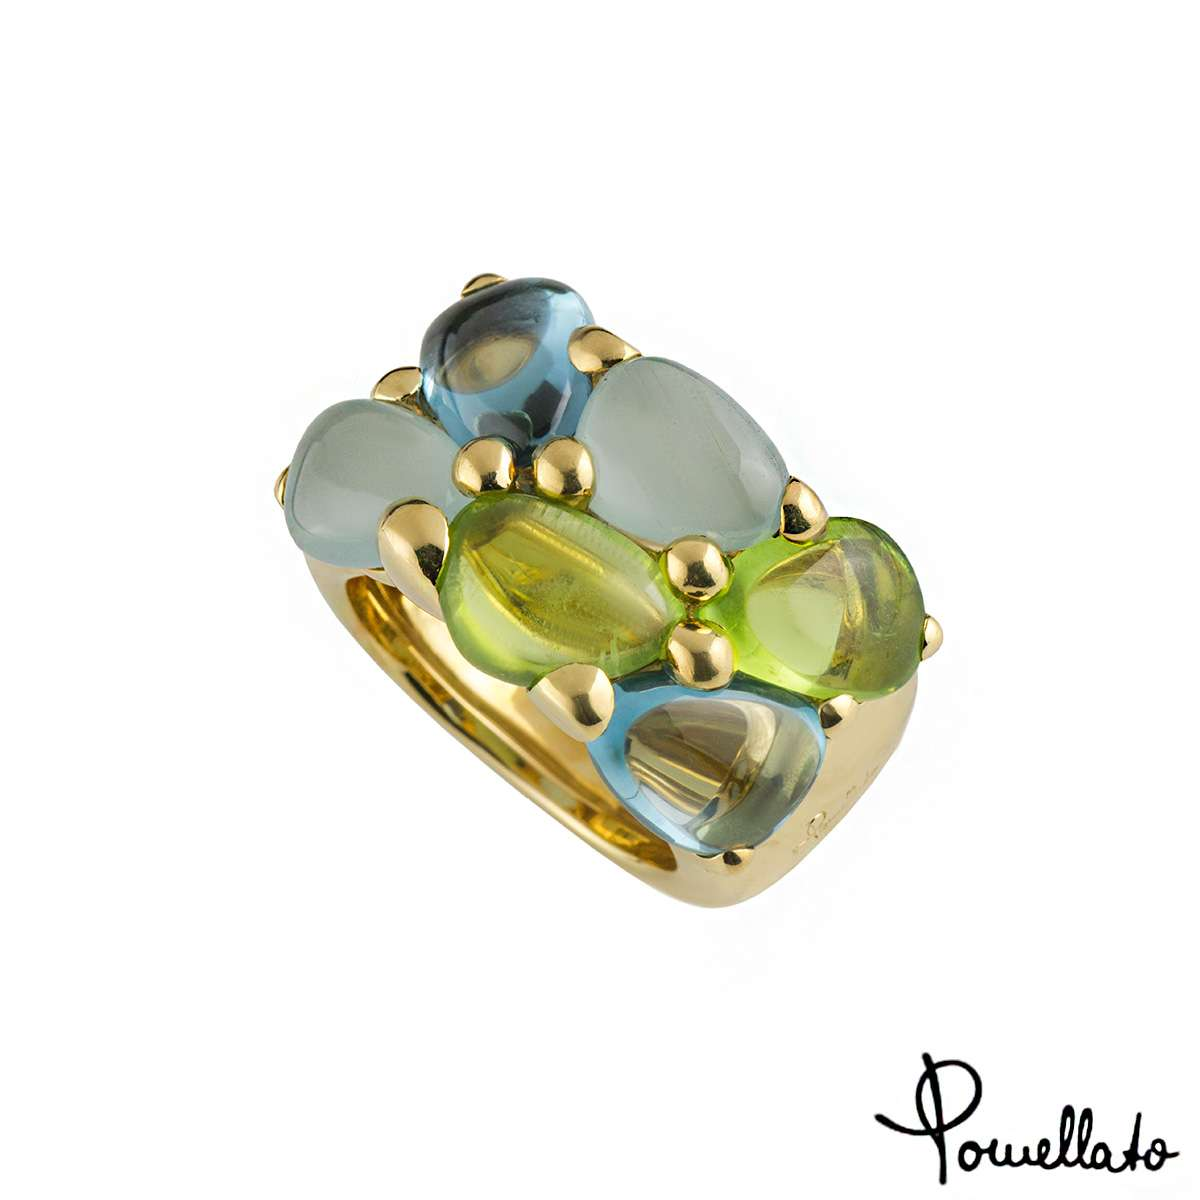 Pomellato 18k Yellow Gold Multi-Gemstone Saffi Ring